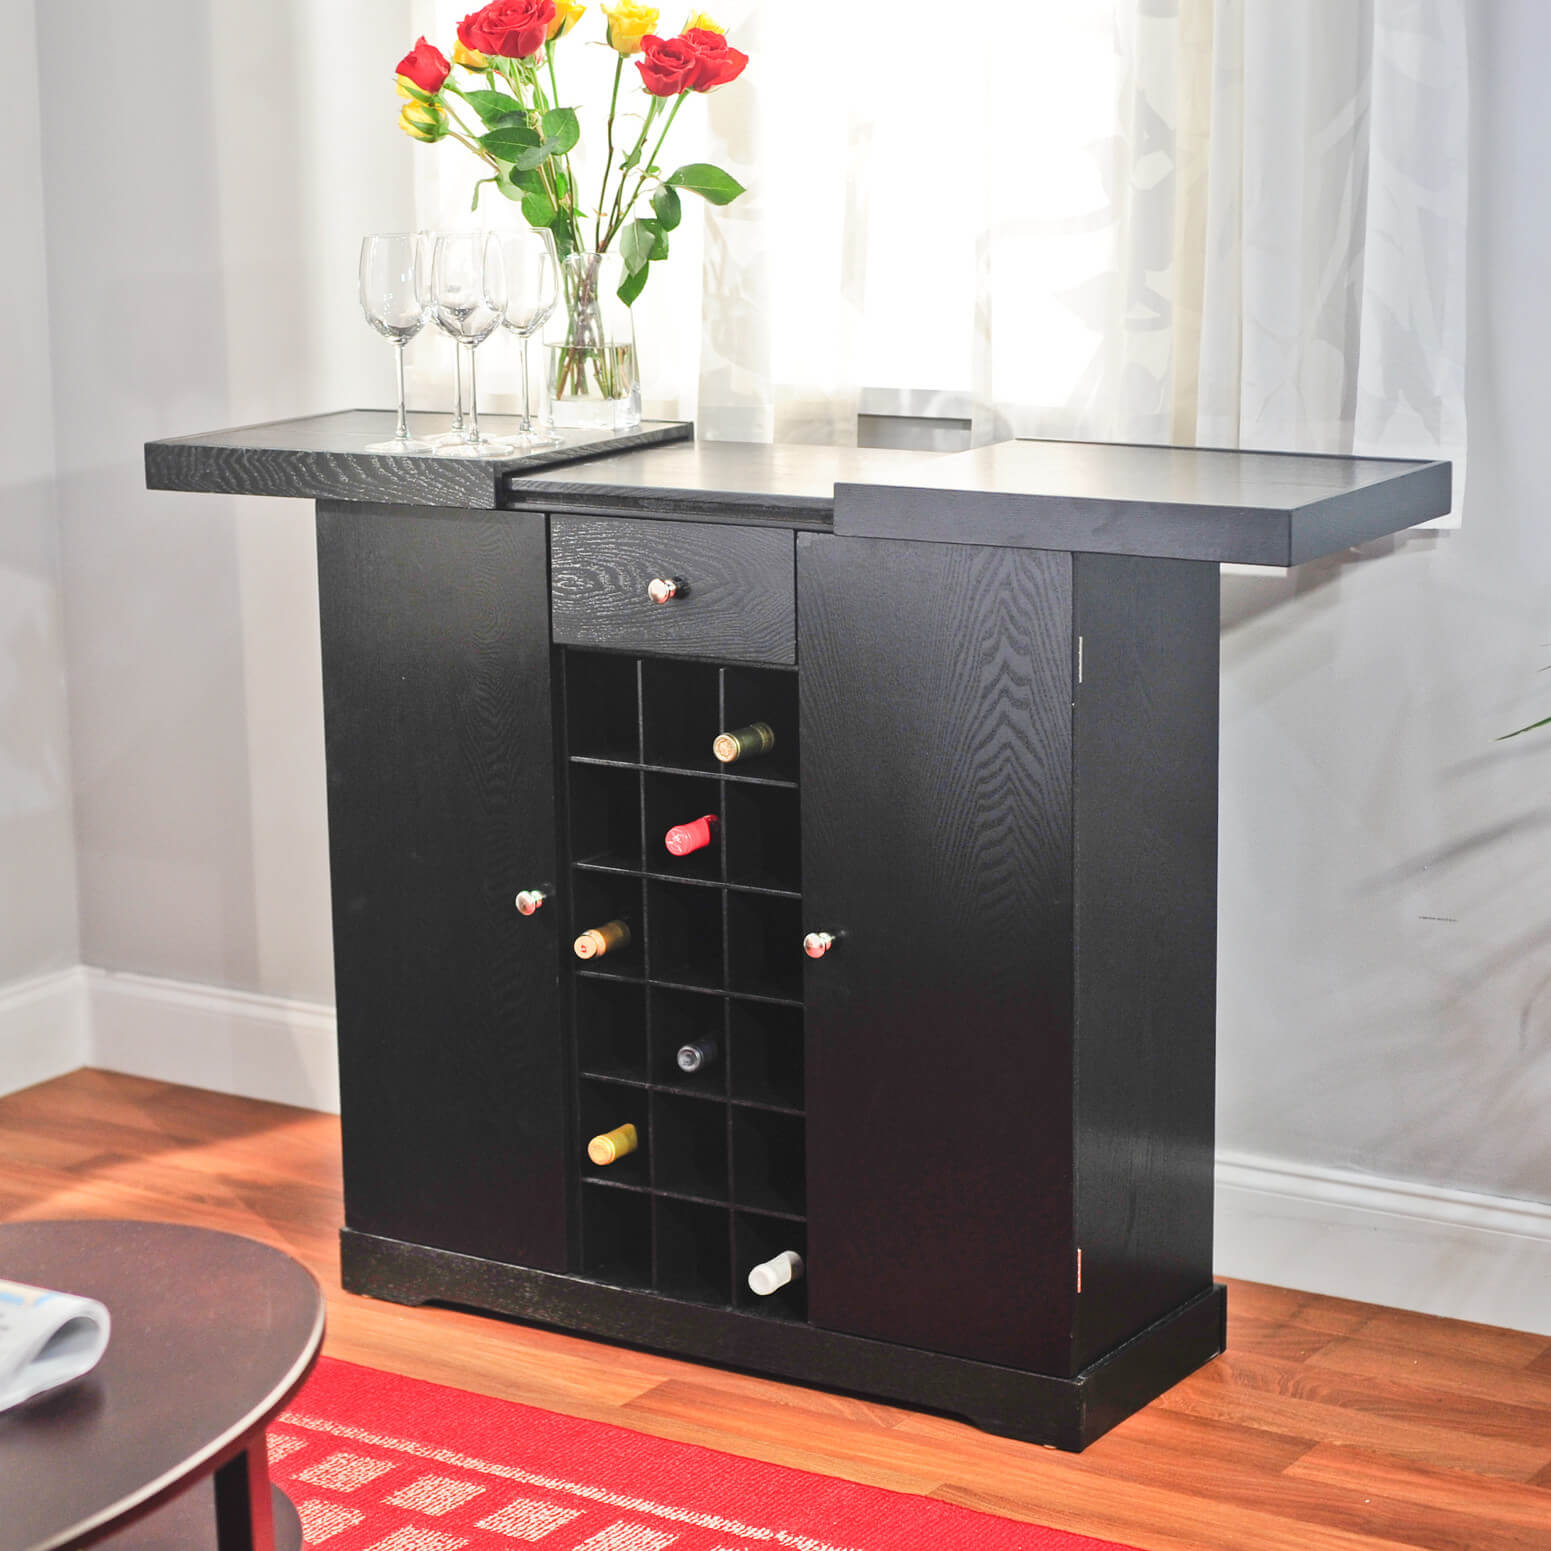 This Is A Classic Cabinet Instead Of A Bar We Included It In This Gallery